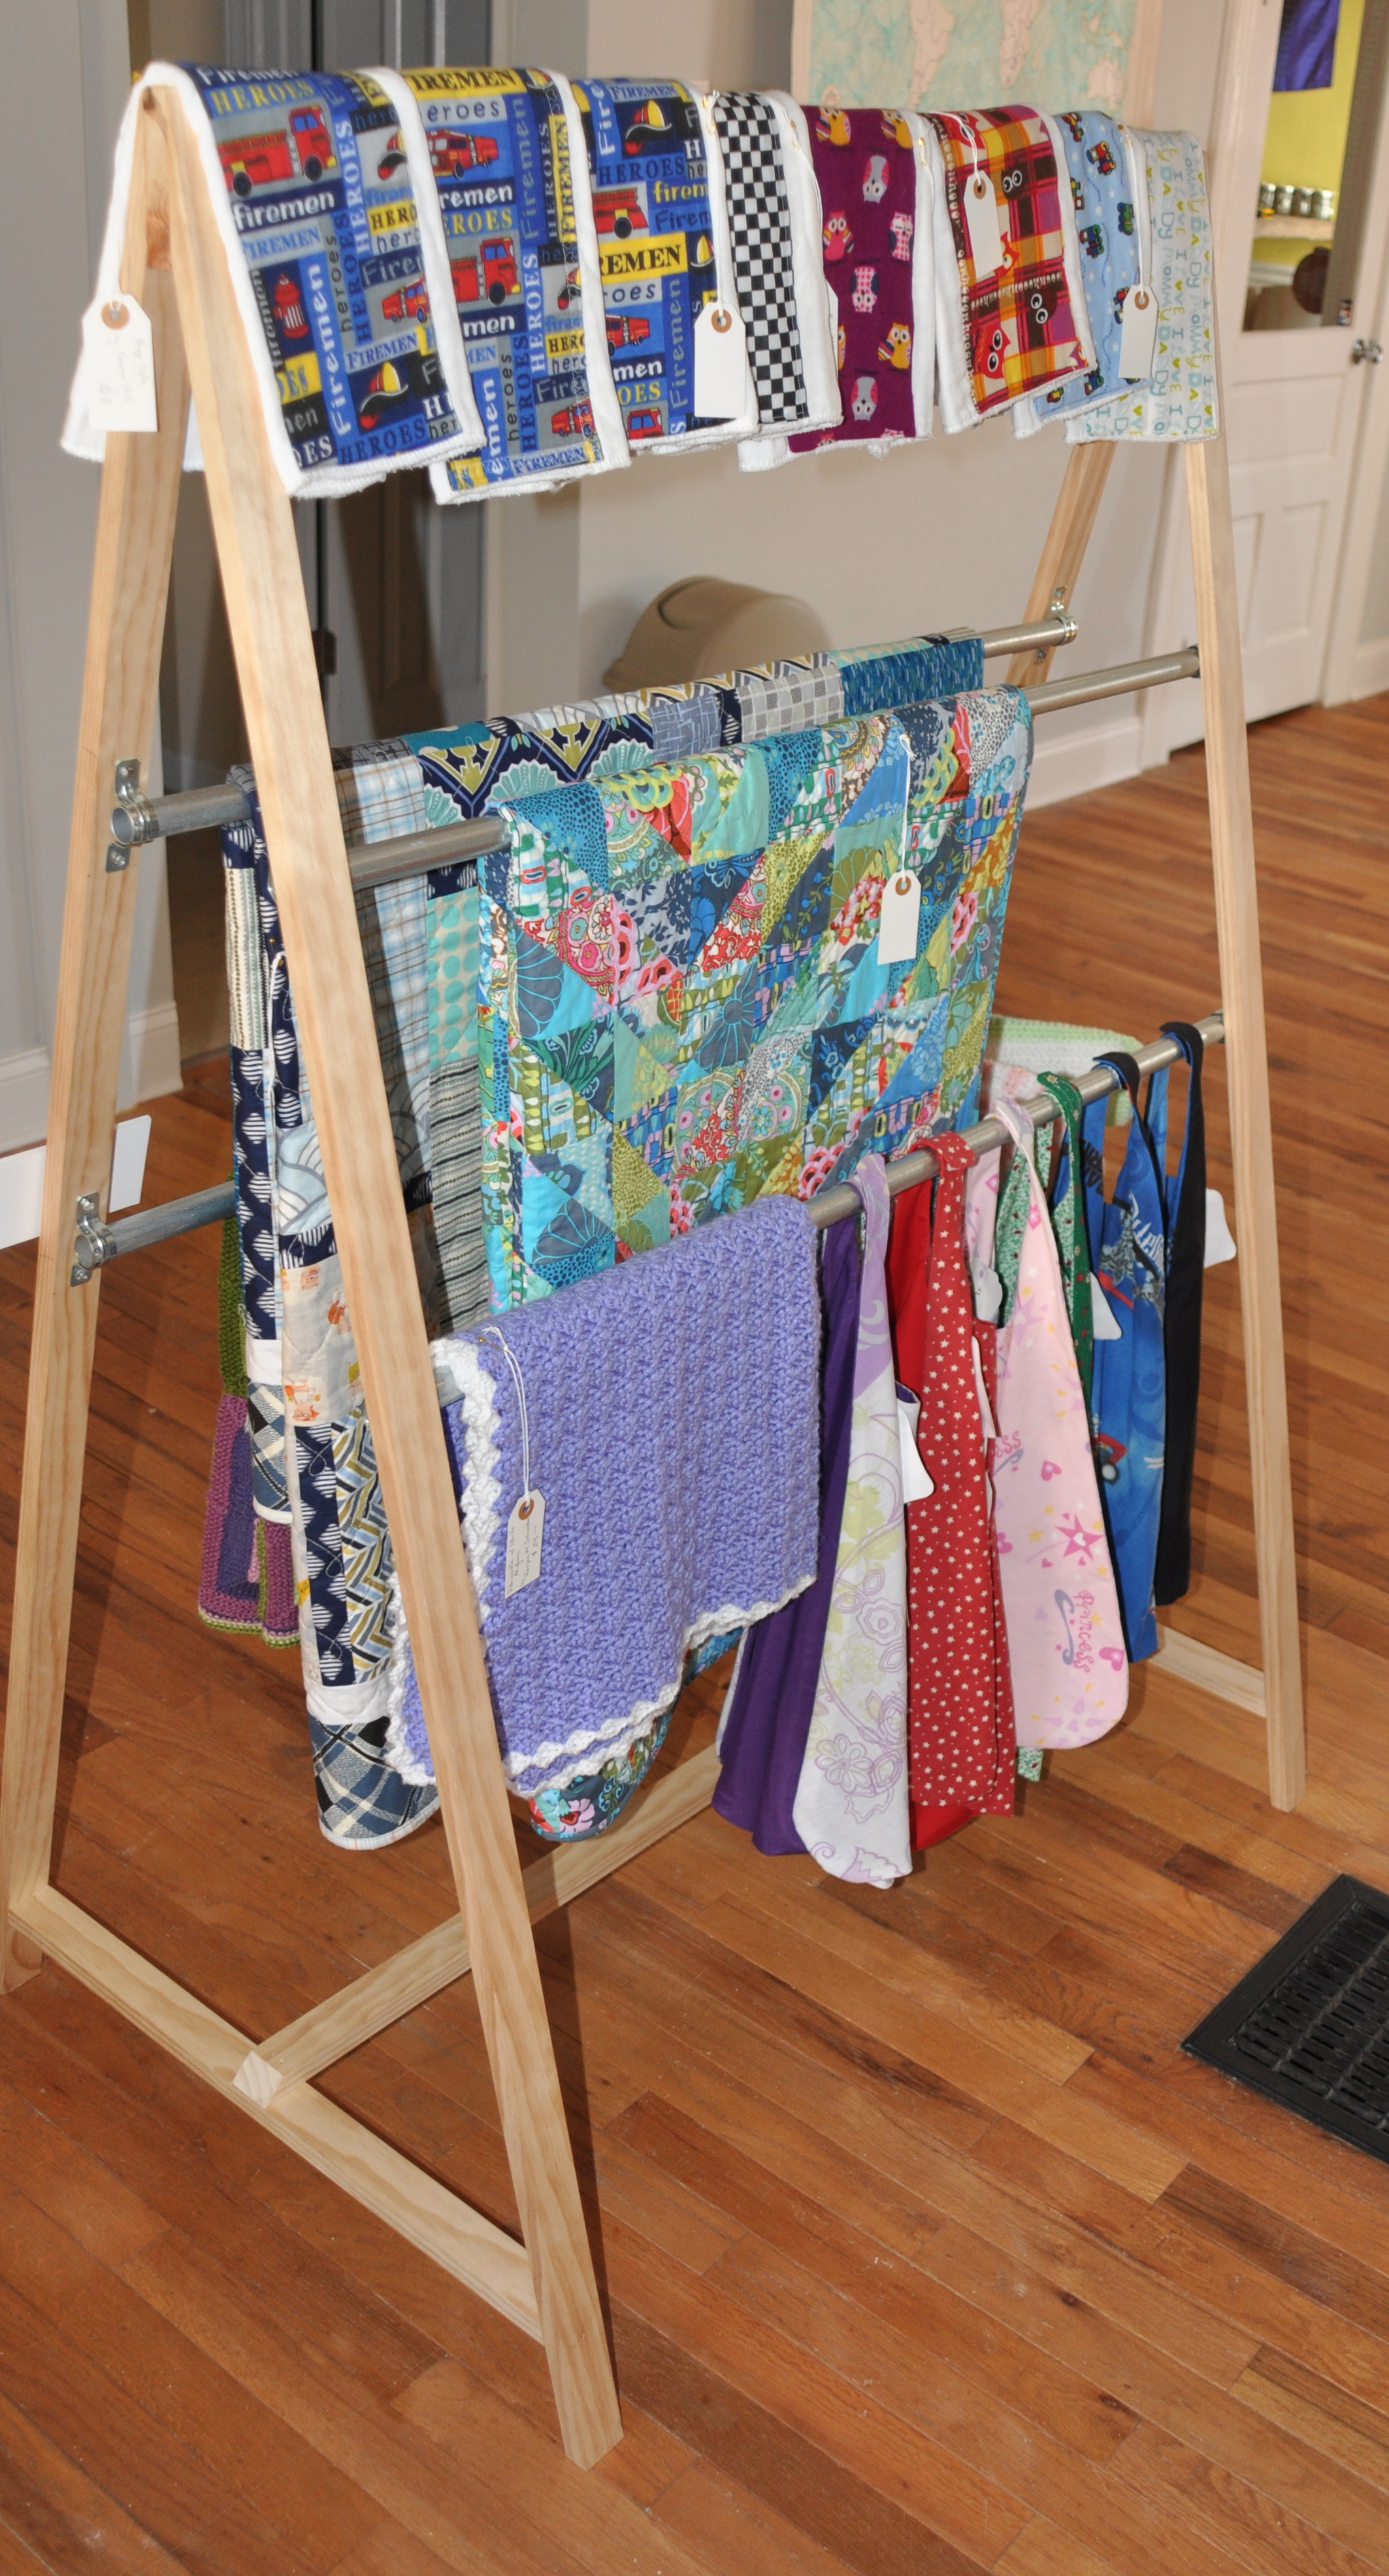 Quilts by Heather Givans and Melissa Ness Hauger; lap blanket by Ravynn M. Schroeder; Knitted Baby Clothes by Ravynn M. Schroeder and Shelia Schroeder; burp clothes and super hero caps by Sabrina Hull.